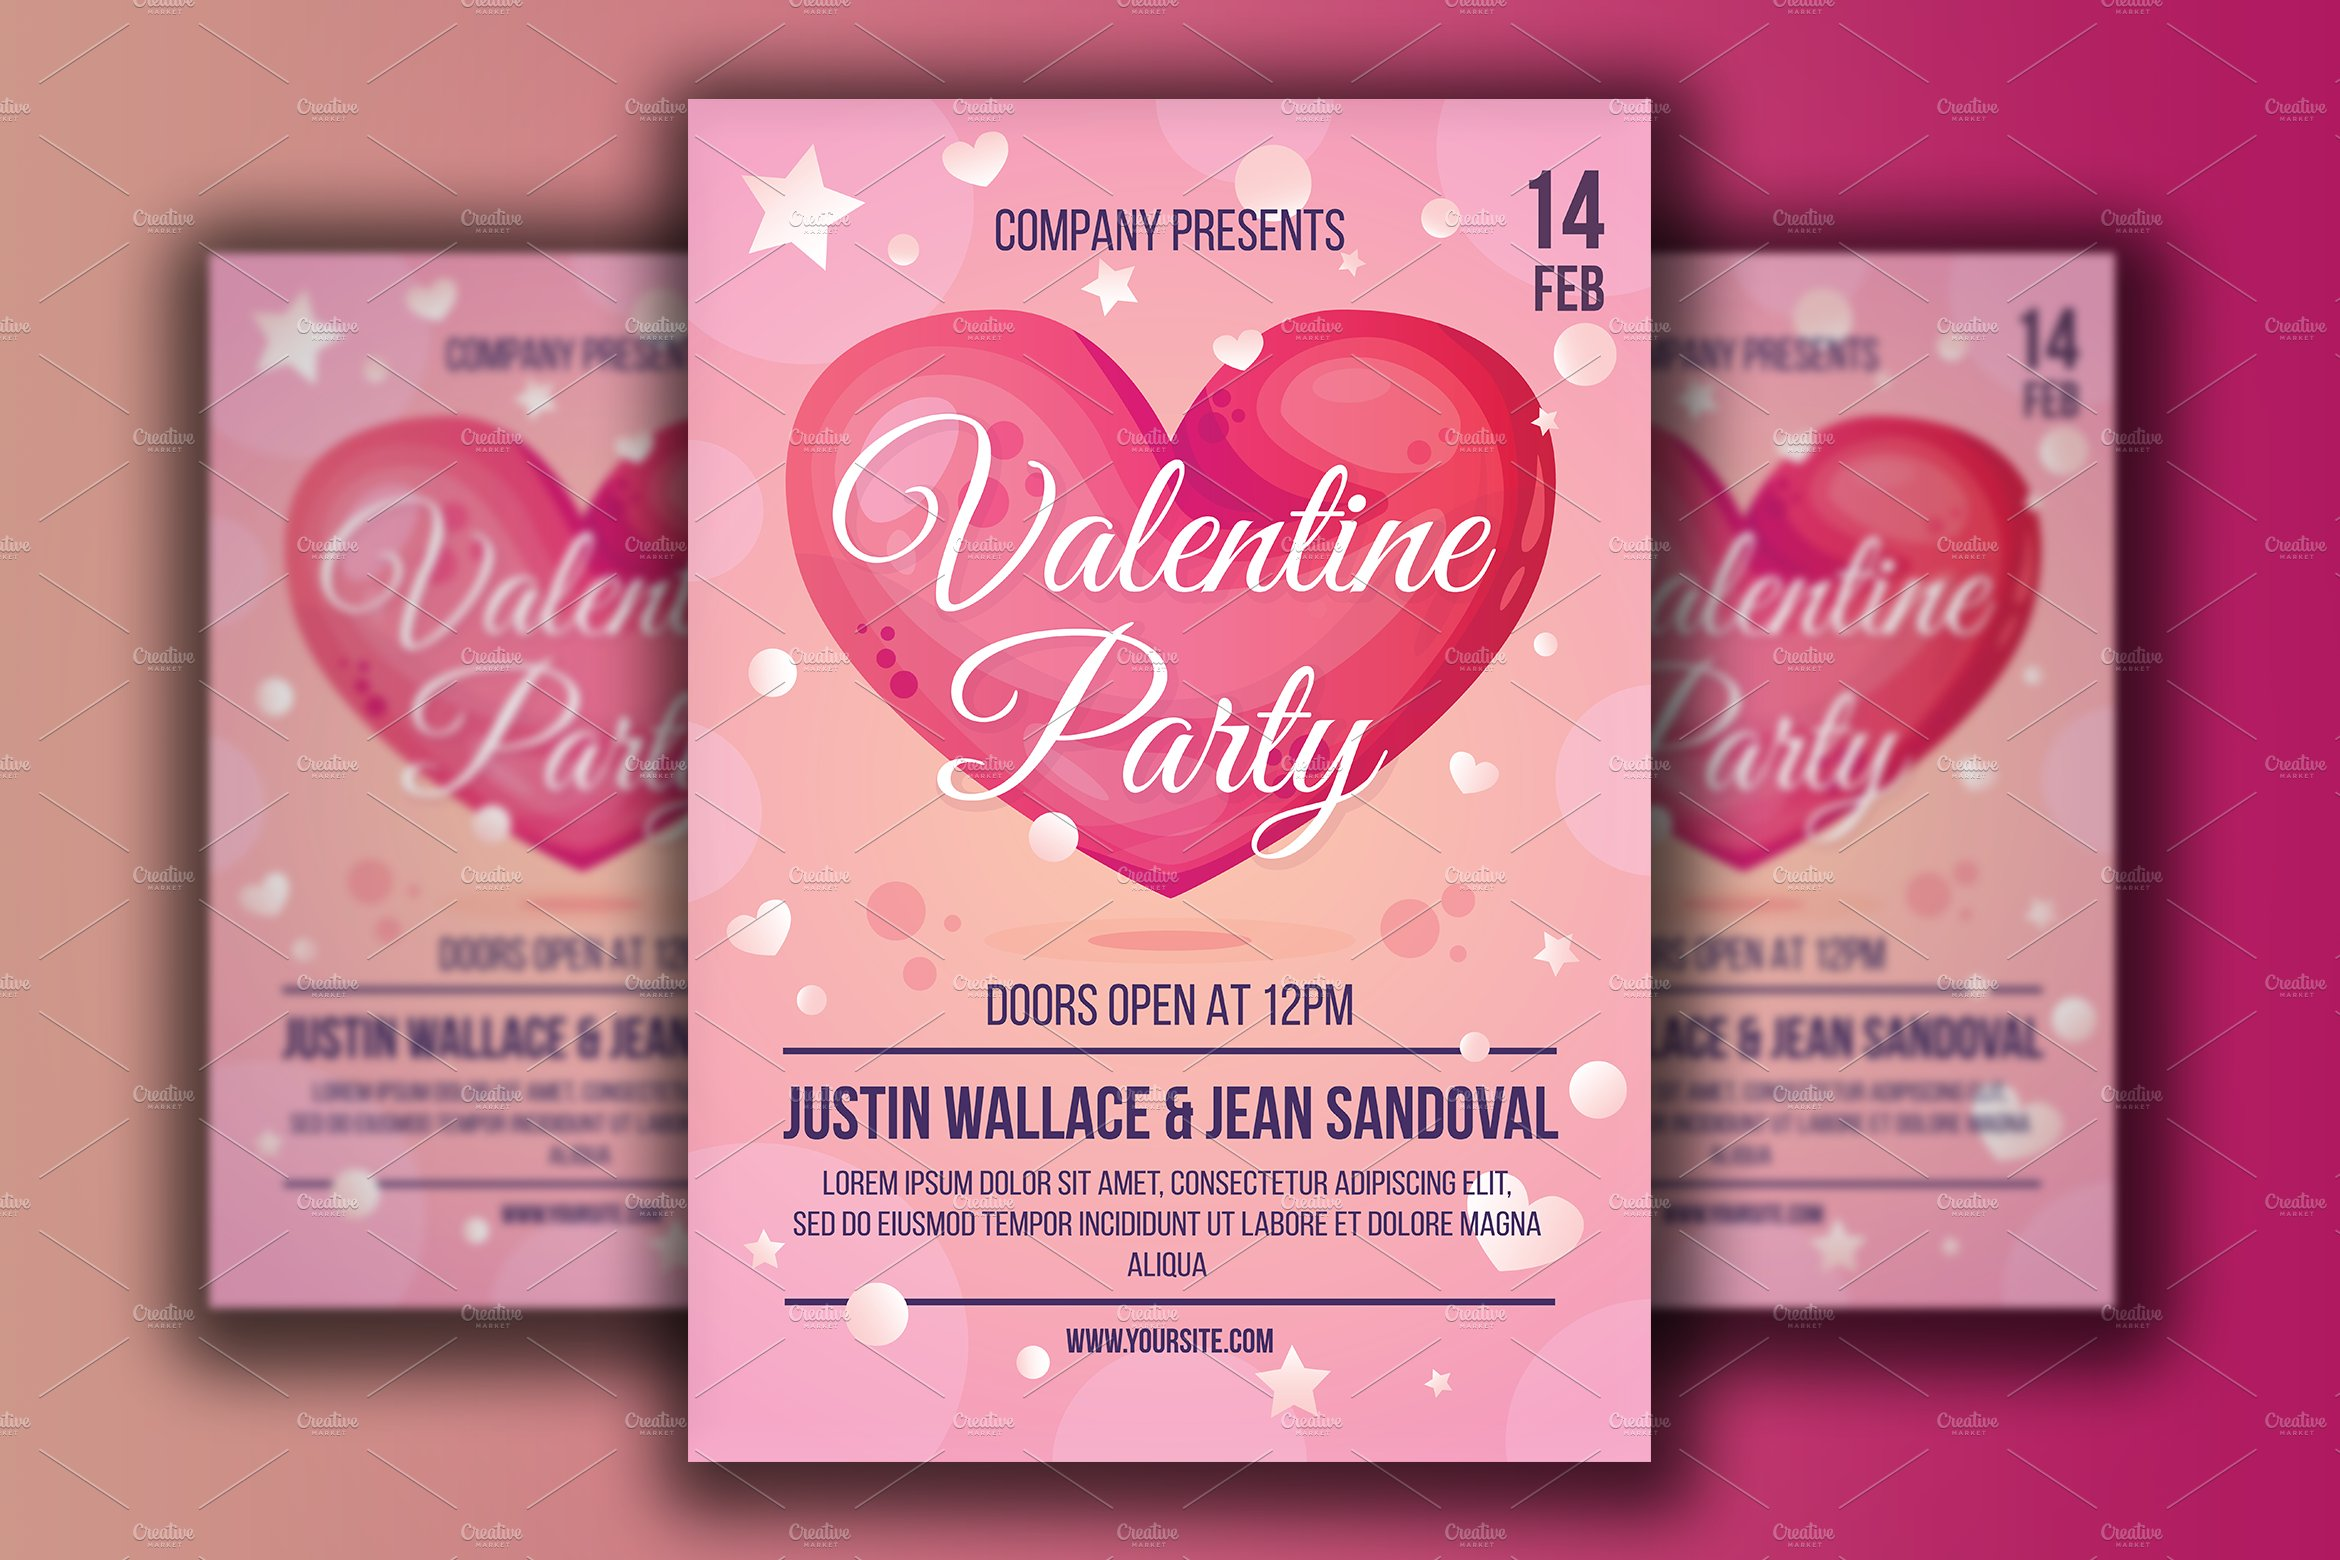 Valentine Day Poster Corporate Identity Template